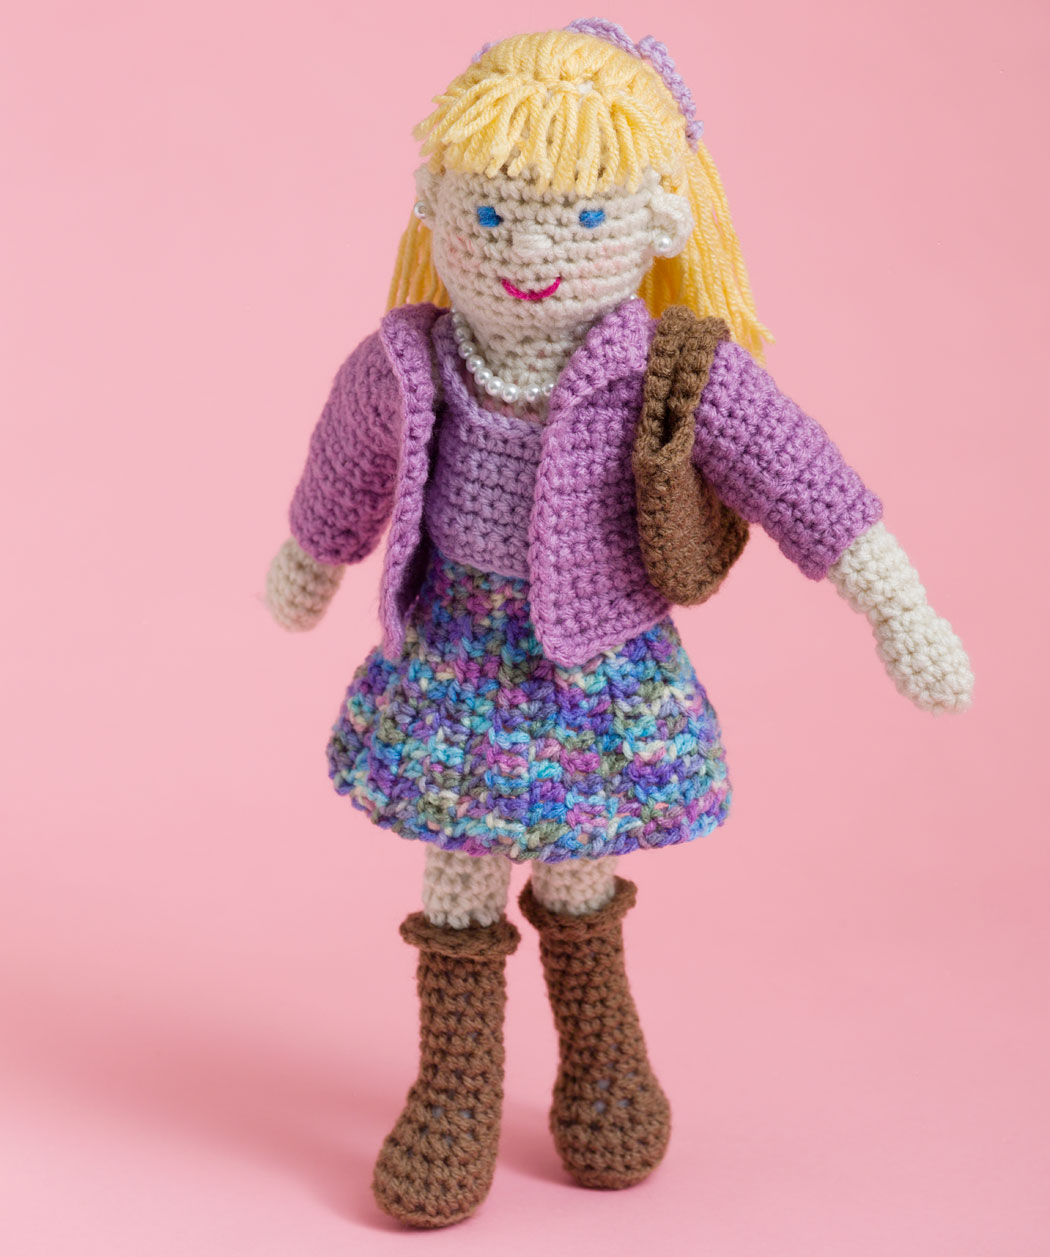 Crochet Pattern Human Doll : 2000 Free Amigurumi Patterns: Free Lovely Lucy Doll ...